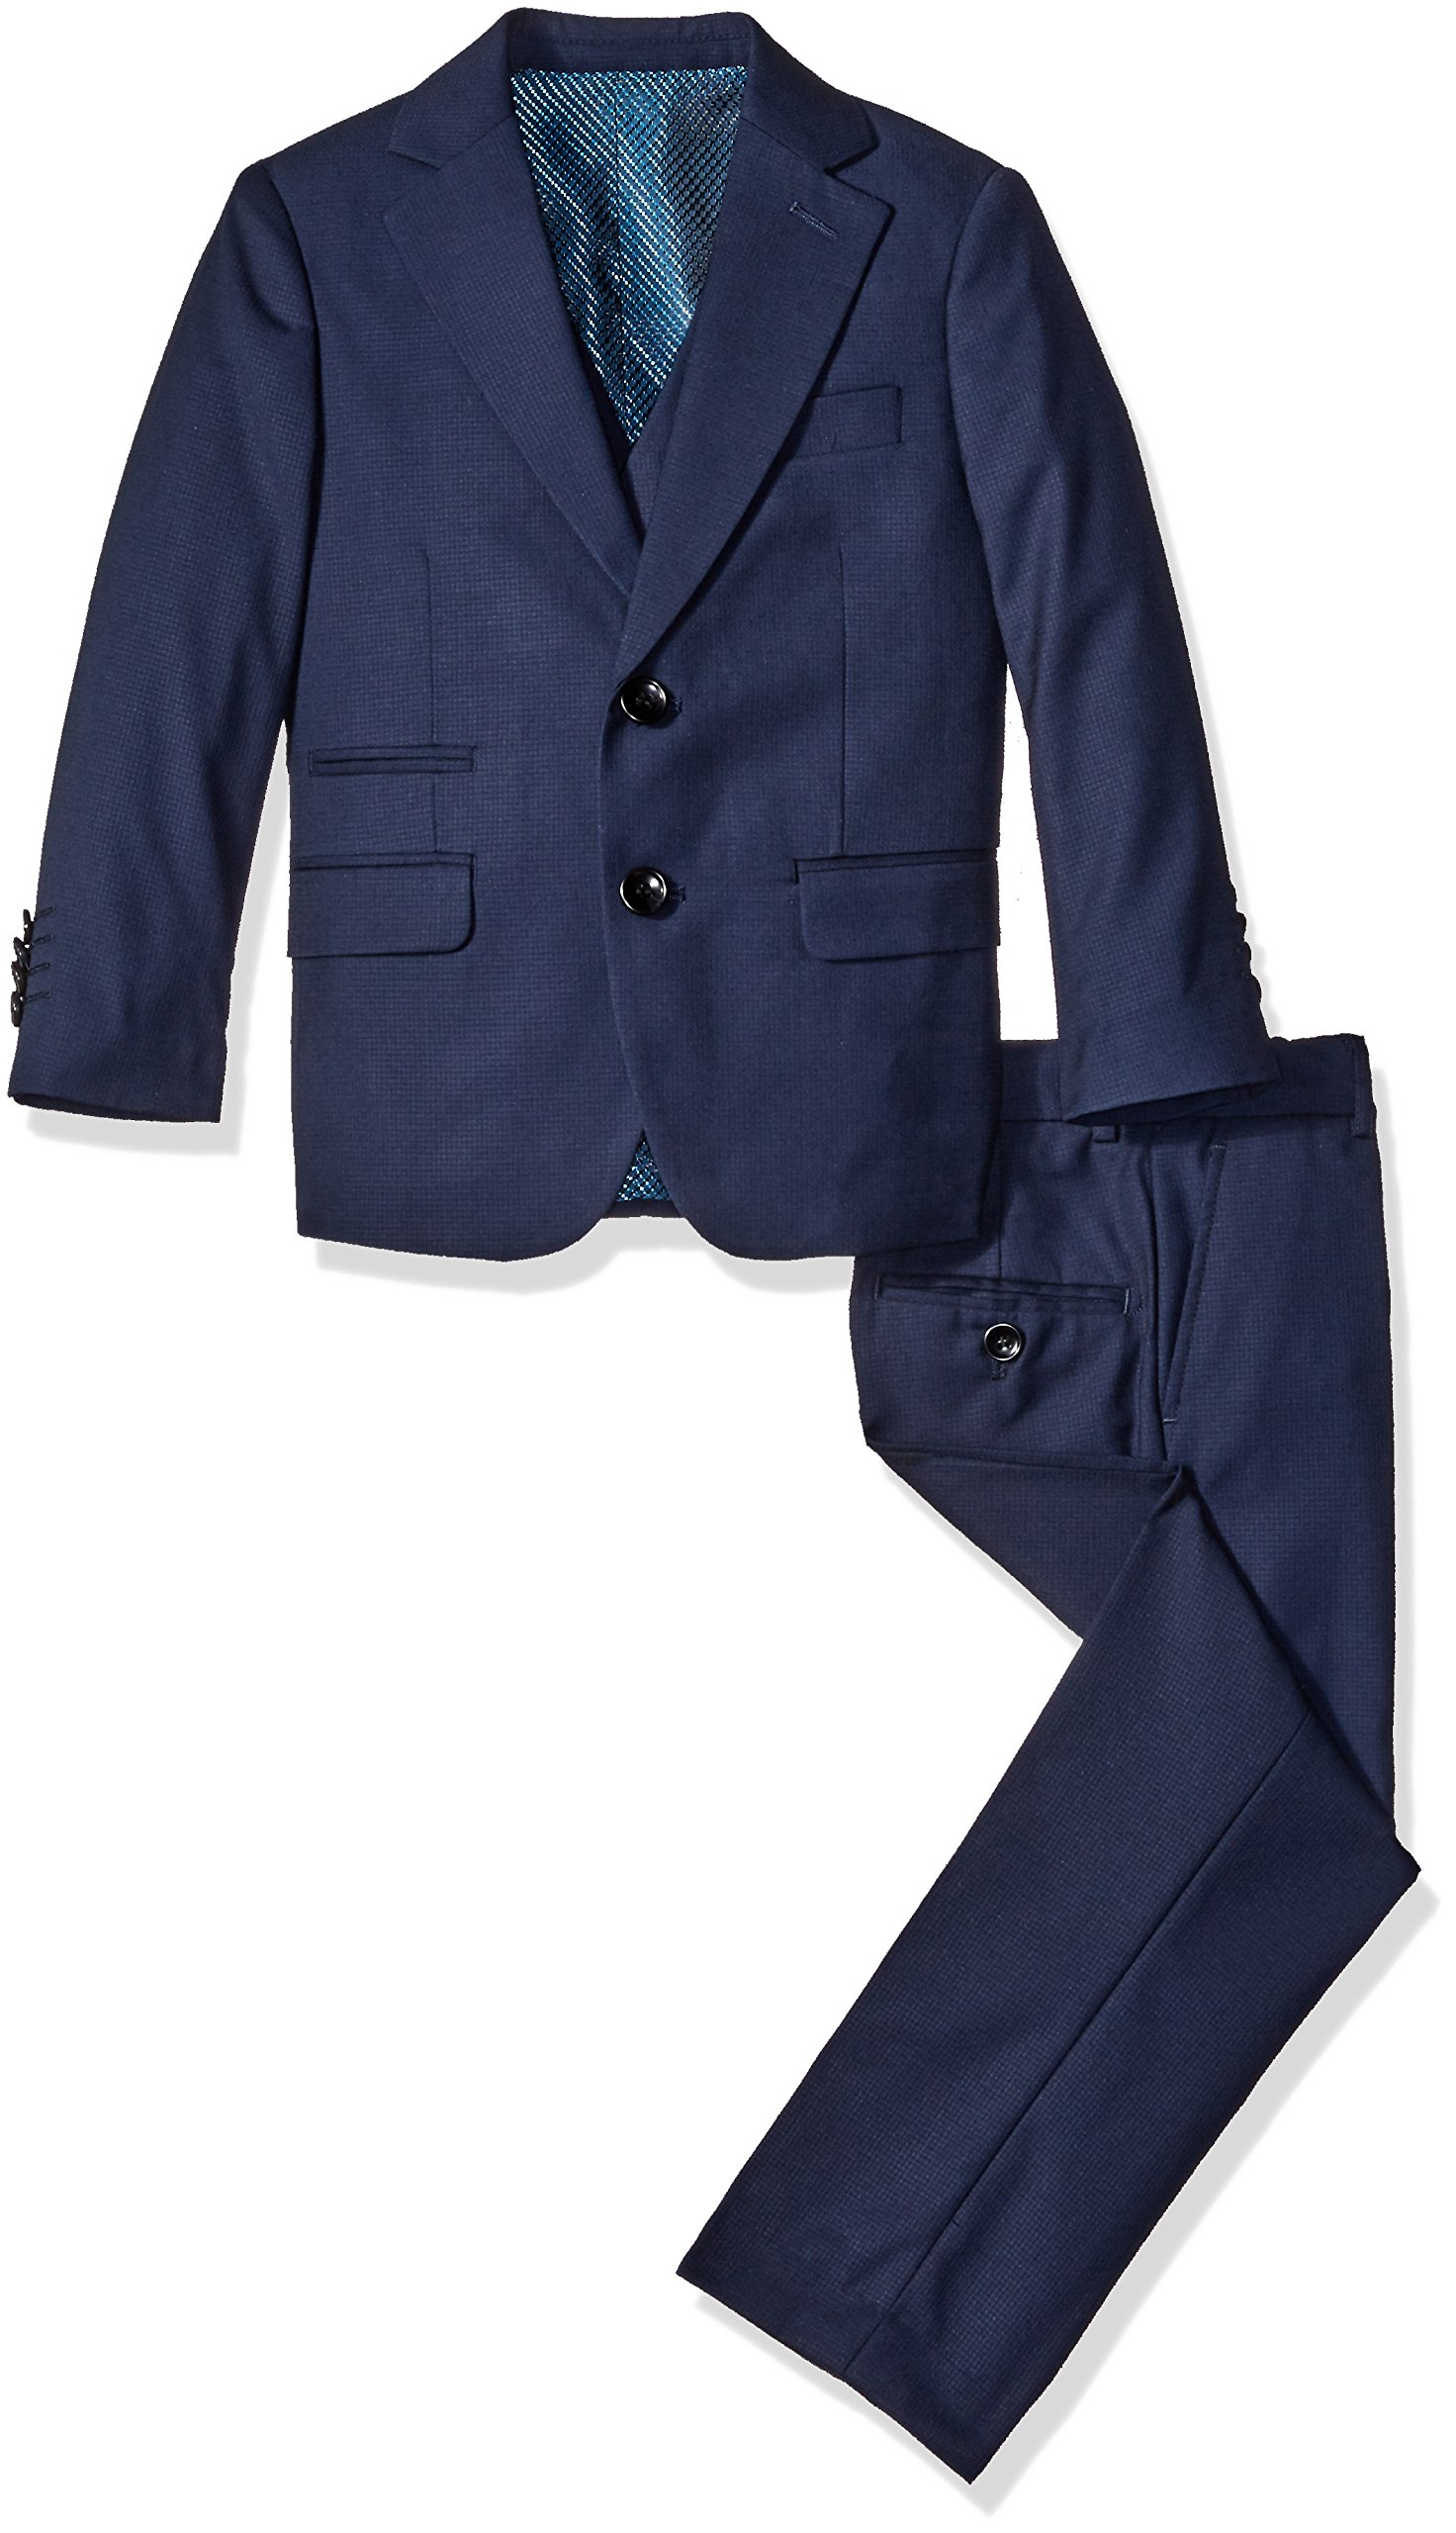 a.x.n.y Big Boys' 3 Piece Textured Suit Set, Navy, 14